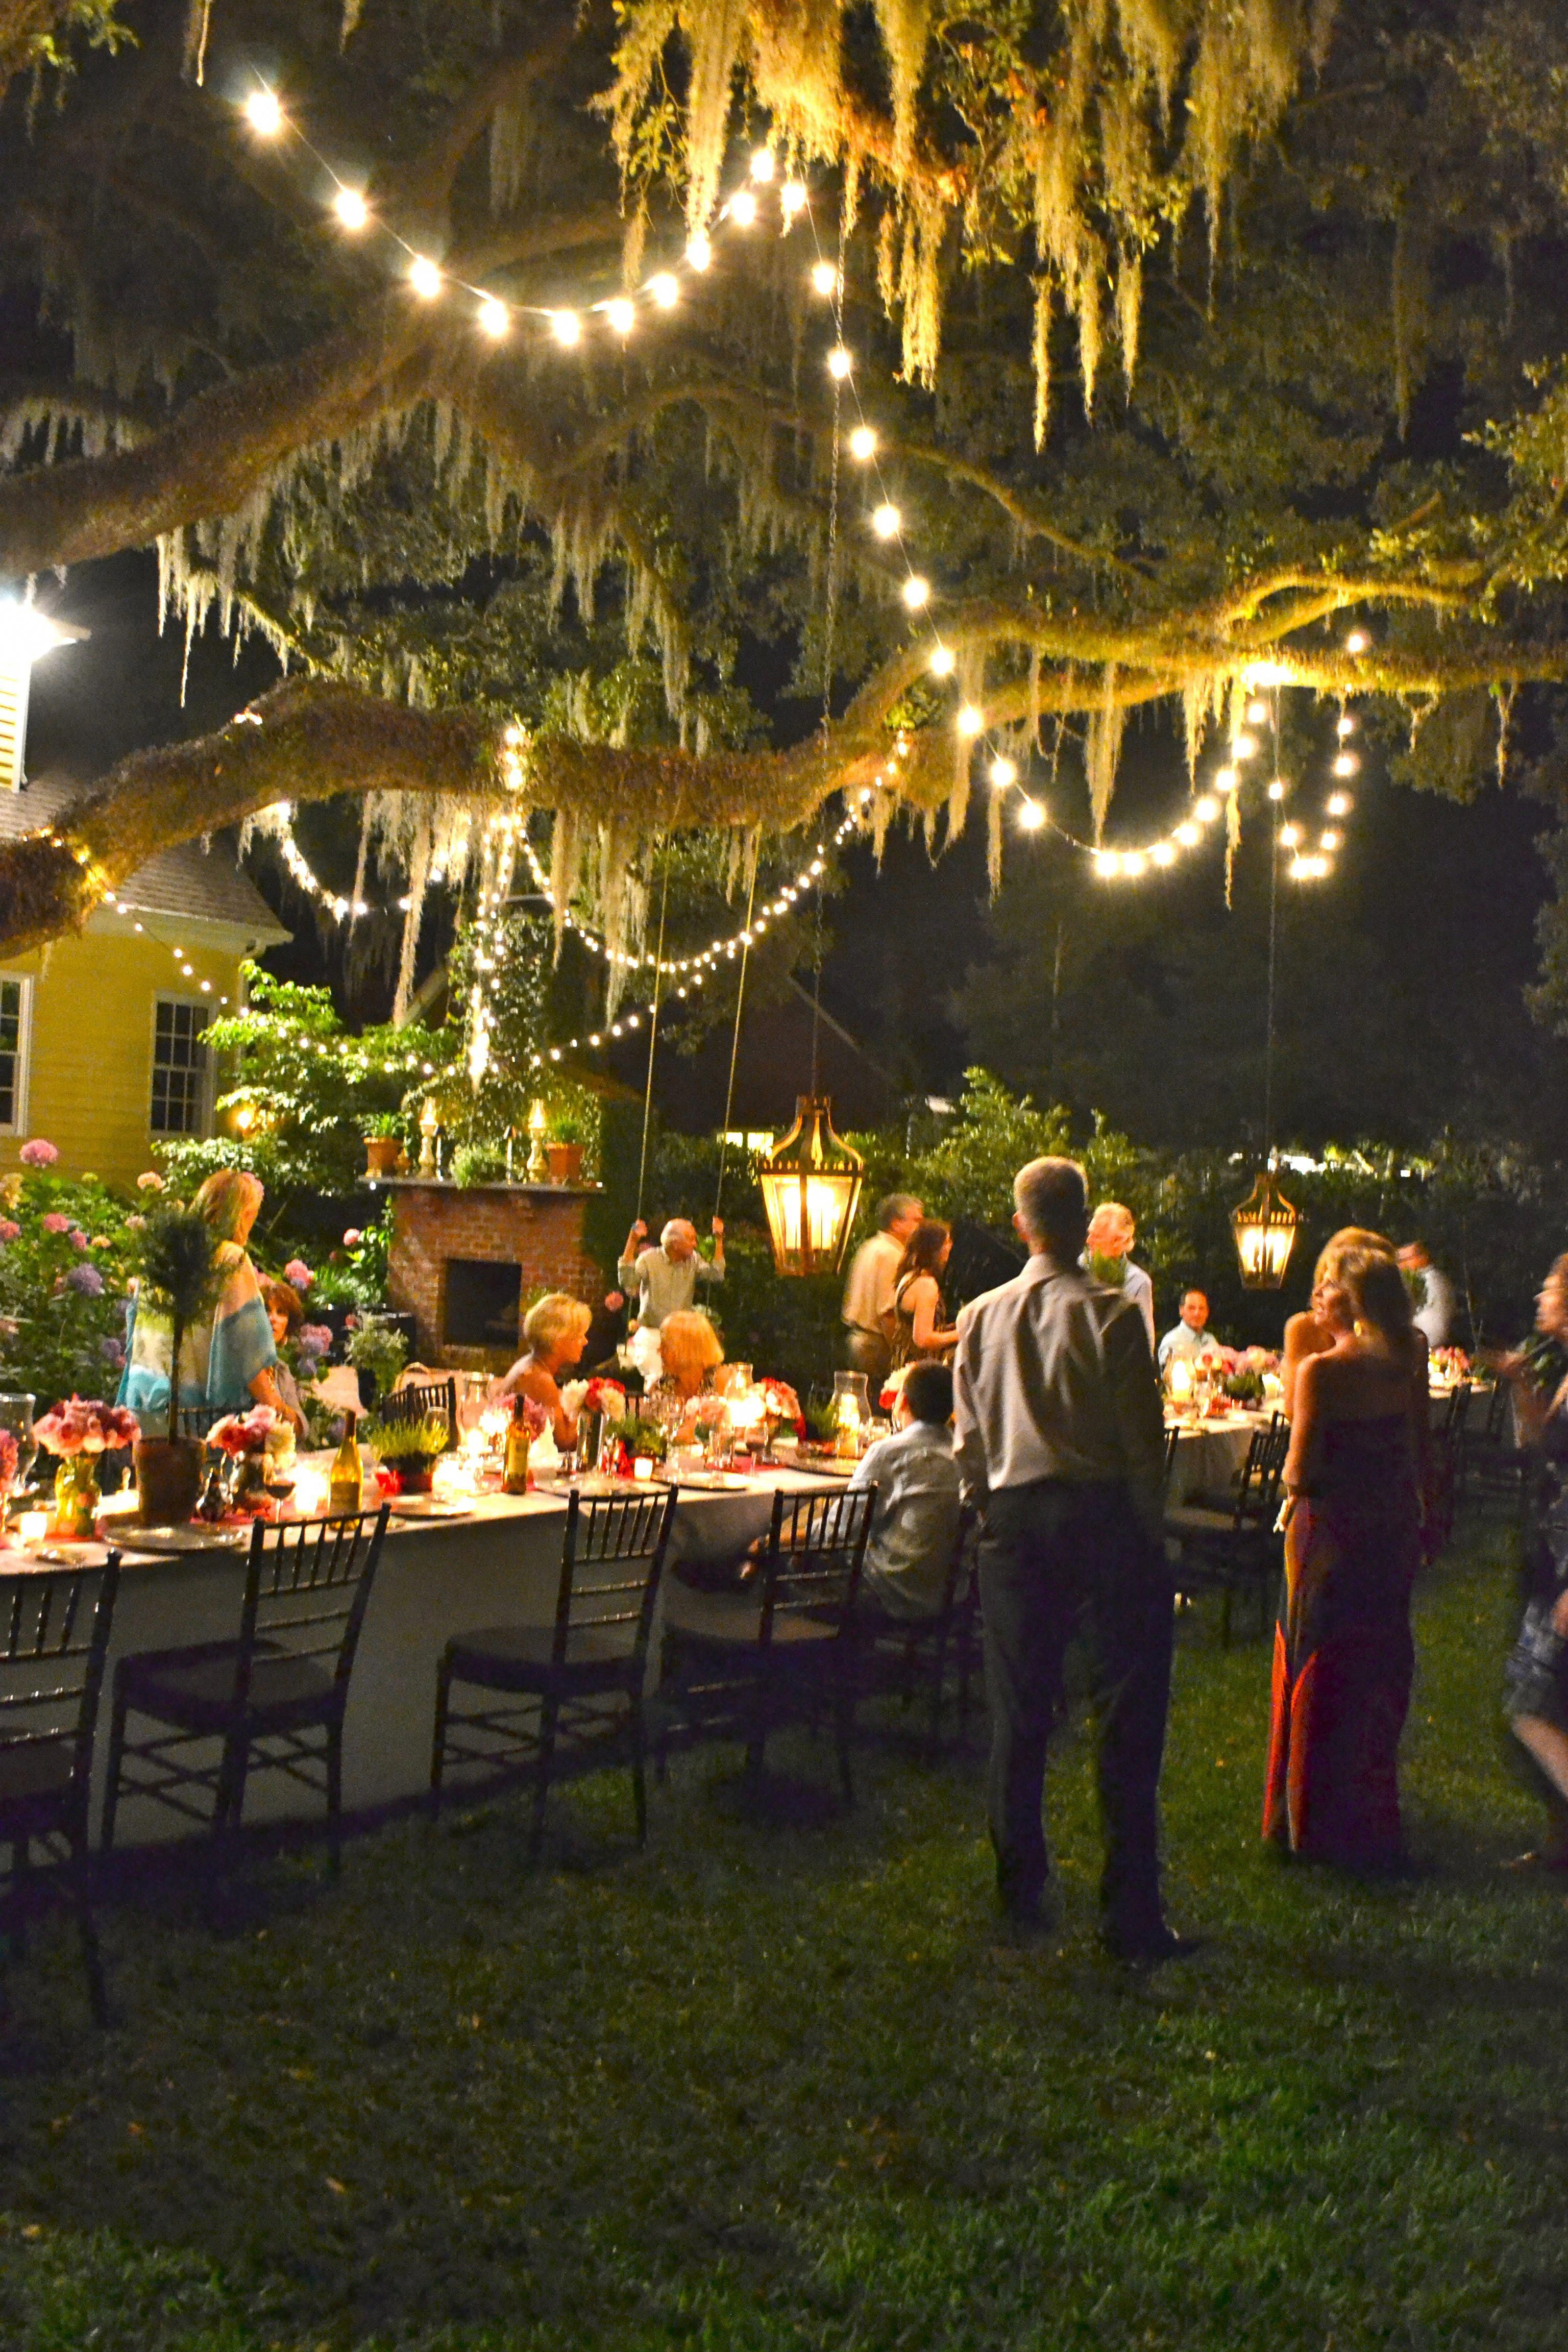 Look This Outdoor Lighting Ideas That Bring Magic Into The Backyard 8083124 Backyard Party Decorations Backyard Birthday Parties Dinner Party Ideas For Adults